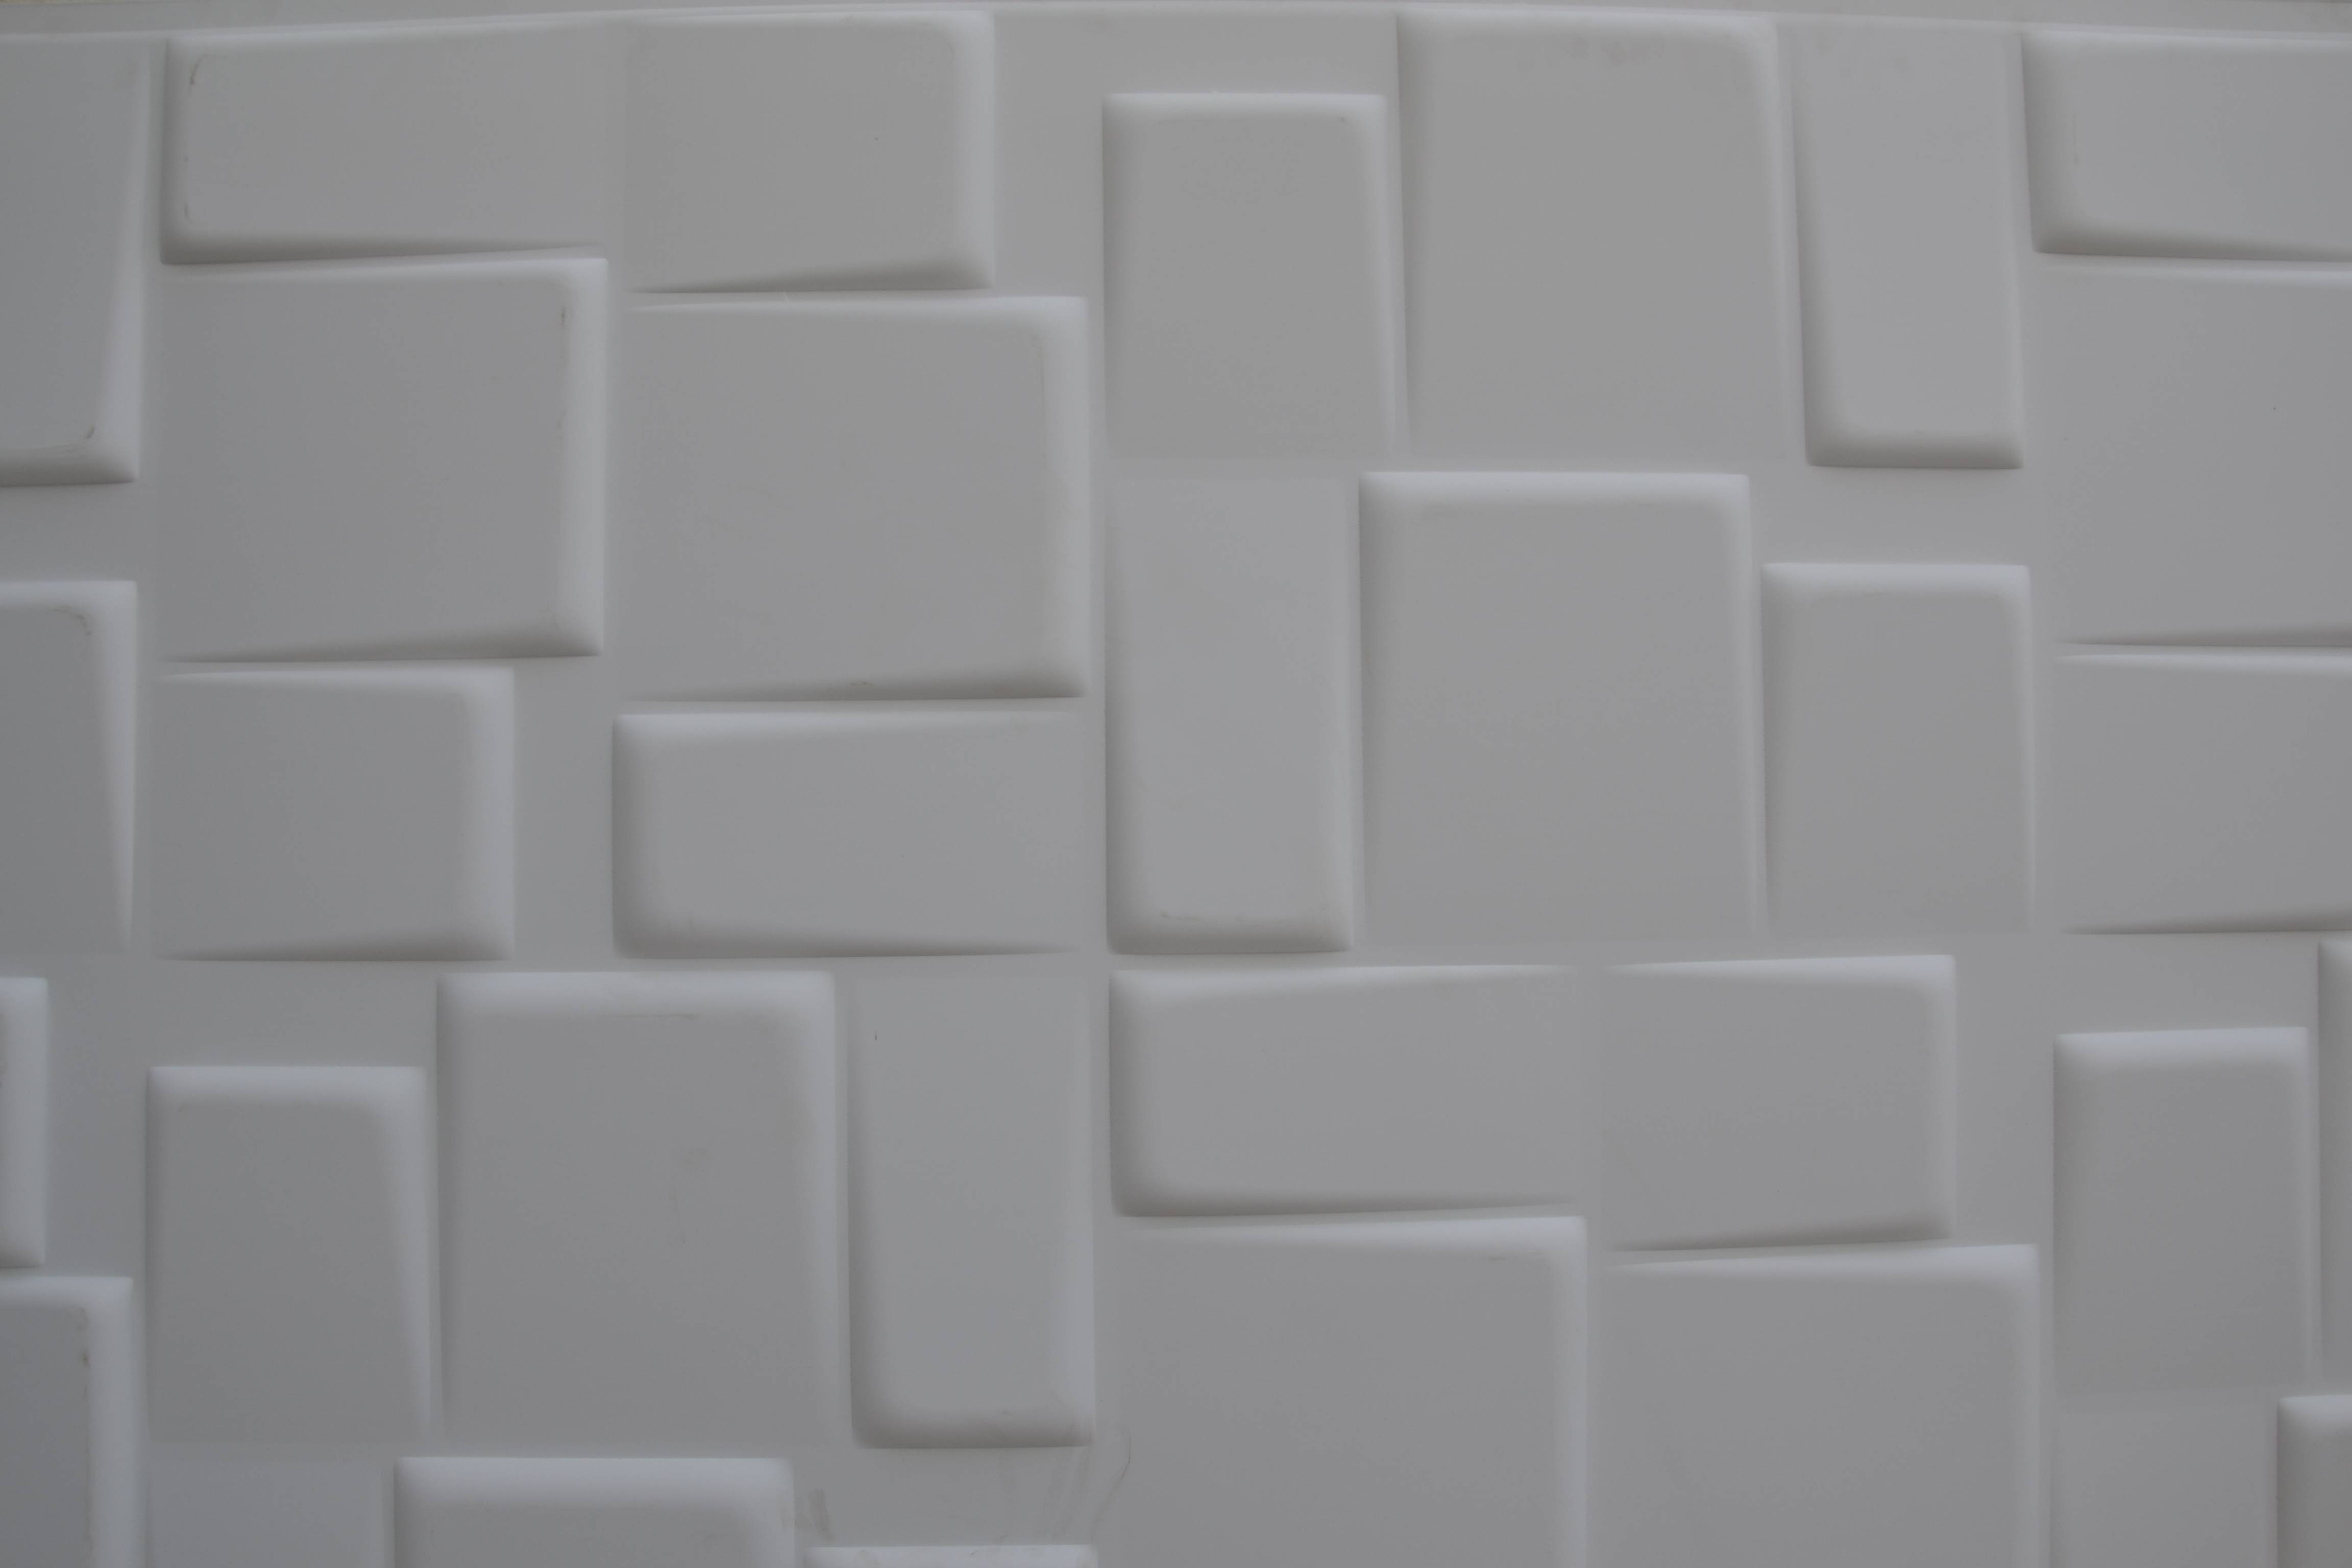 3D Wall Panels | 3D Pvc Panels | 3D Decorative Panels | Pvc Wall Pertaining To Latest 3D Plastic Wall Panels (Gallery 13 of 20)